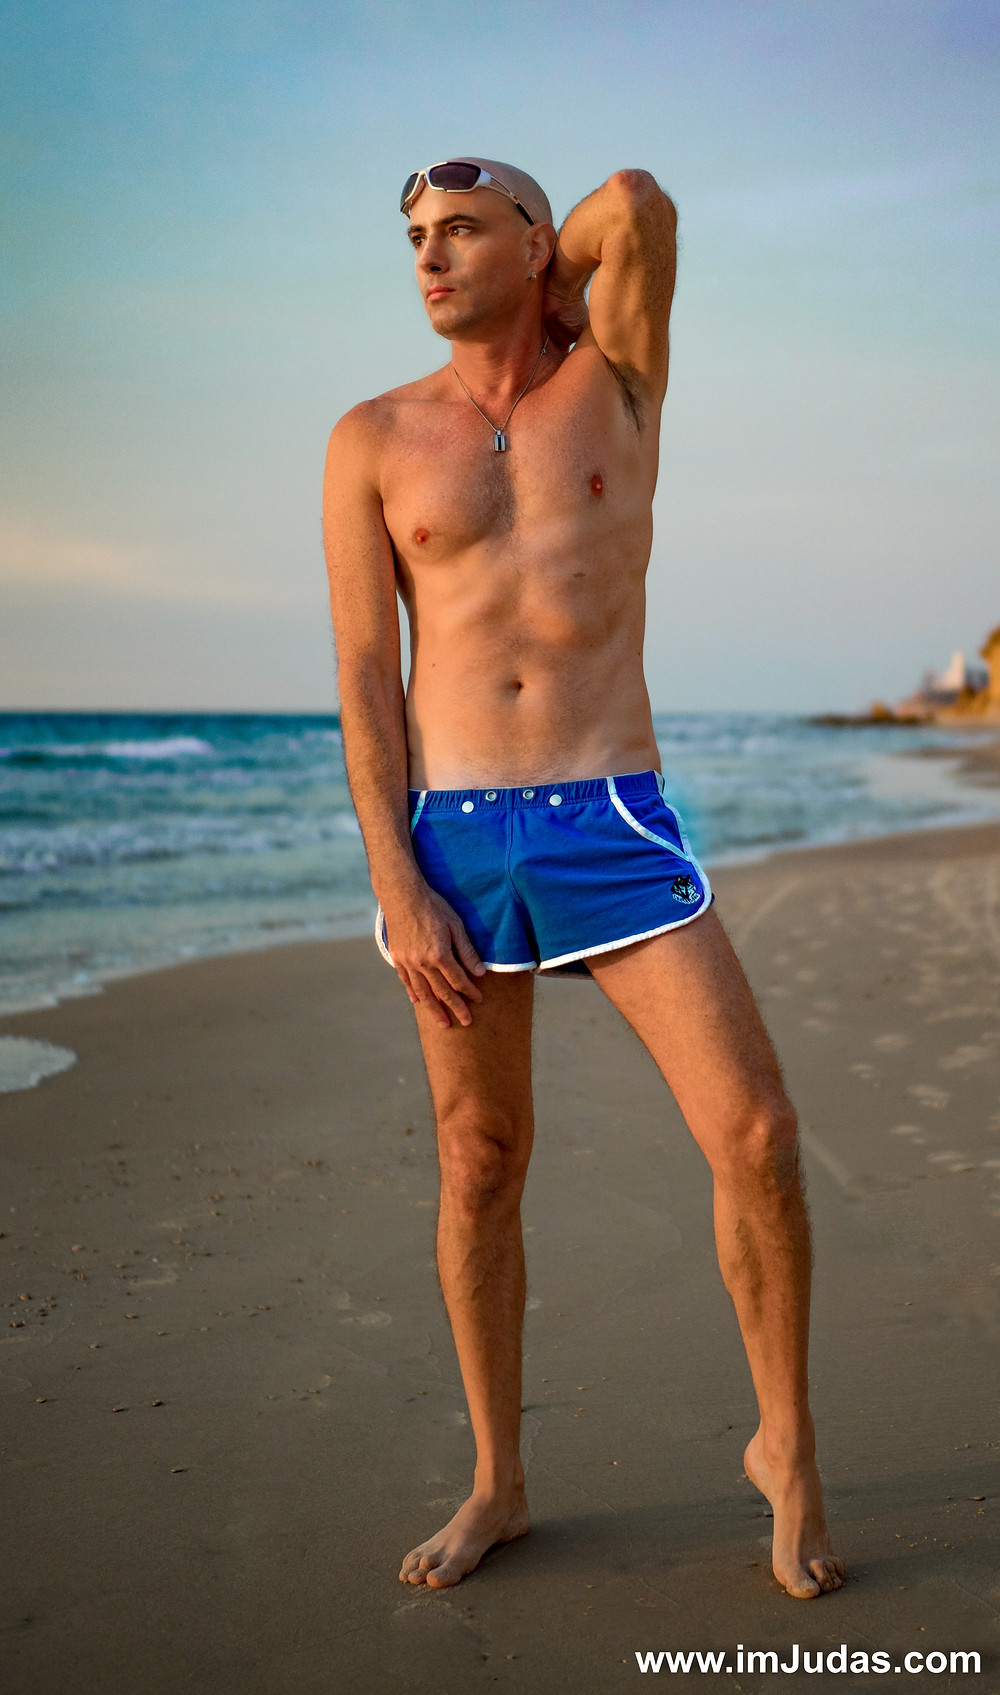 shirtless make man model beach portrait gay